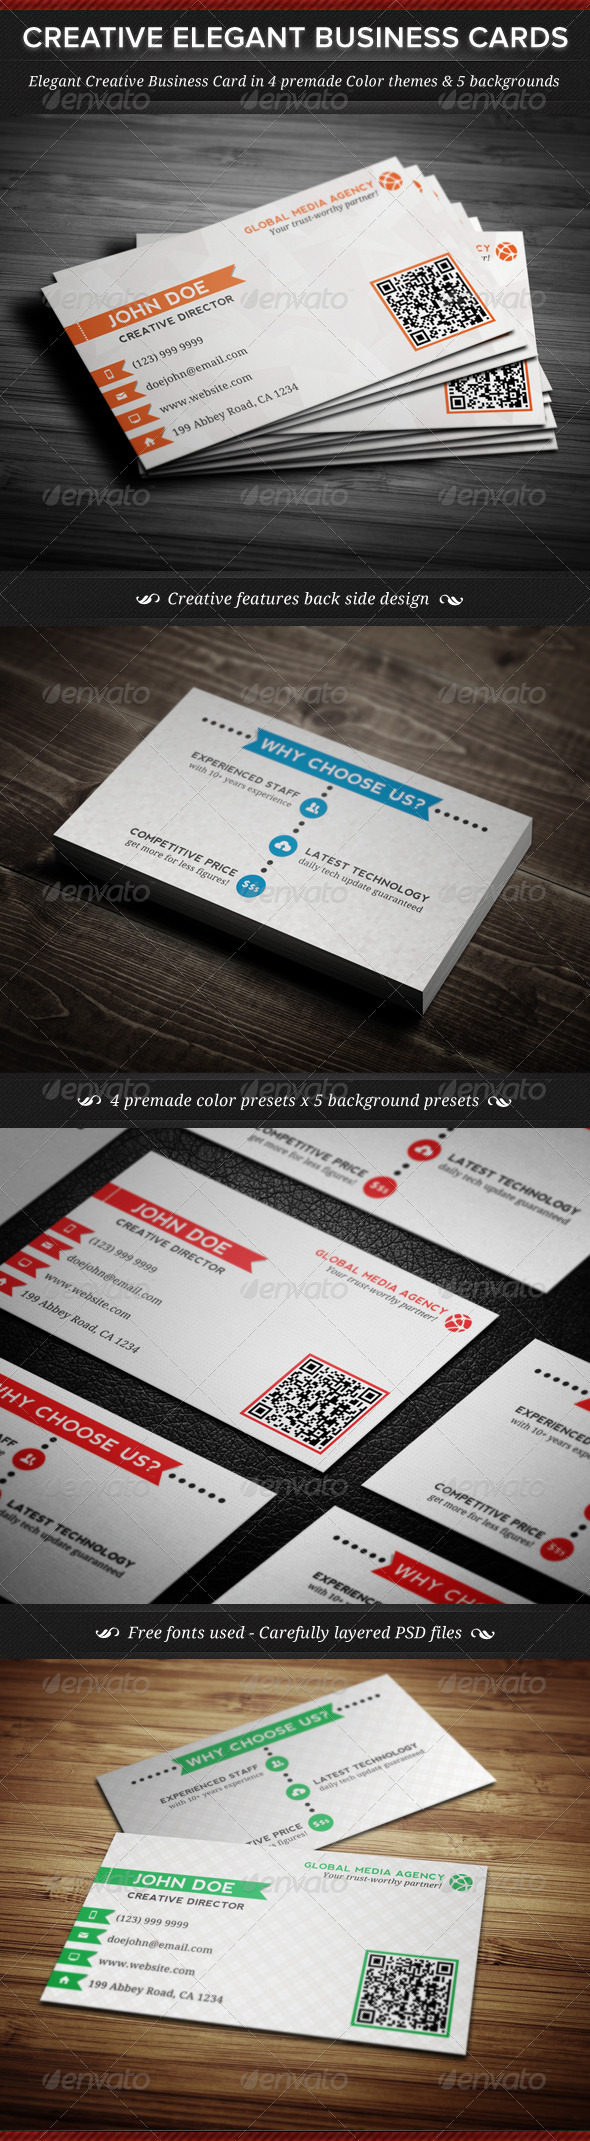 Elegant creative business cards template reheart Choice Image